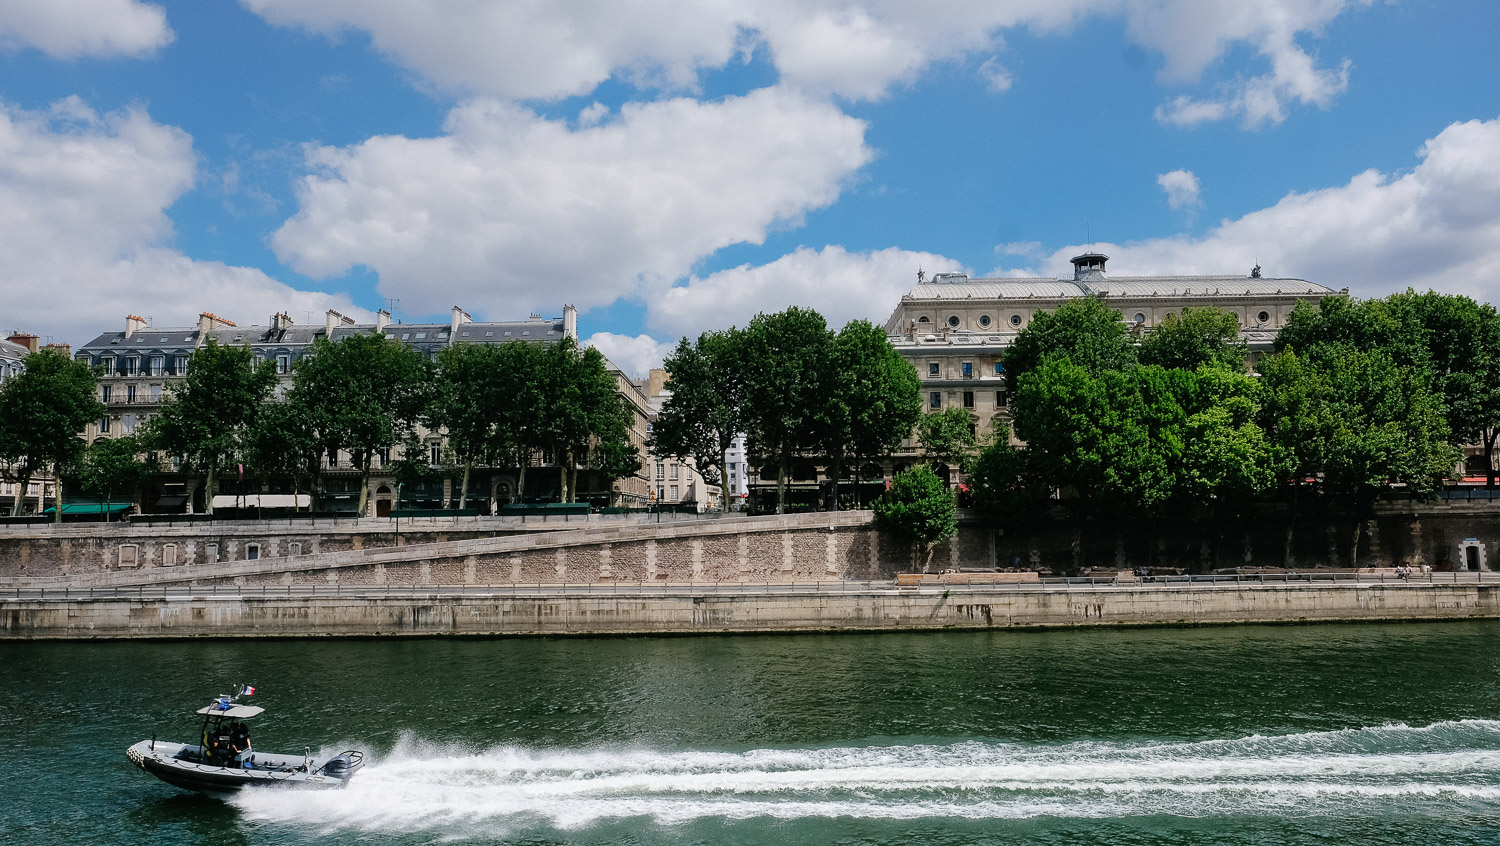 A speed boat on the Seine